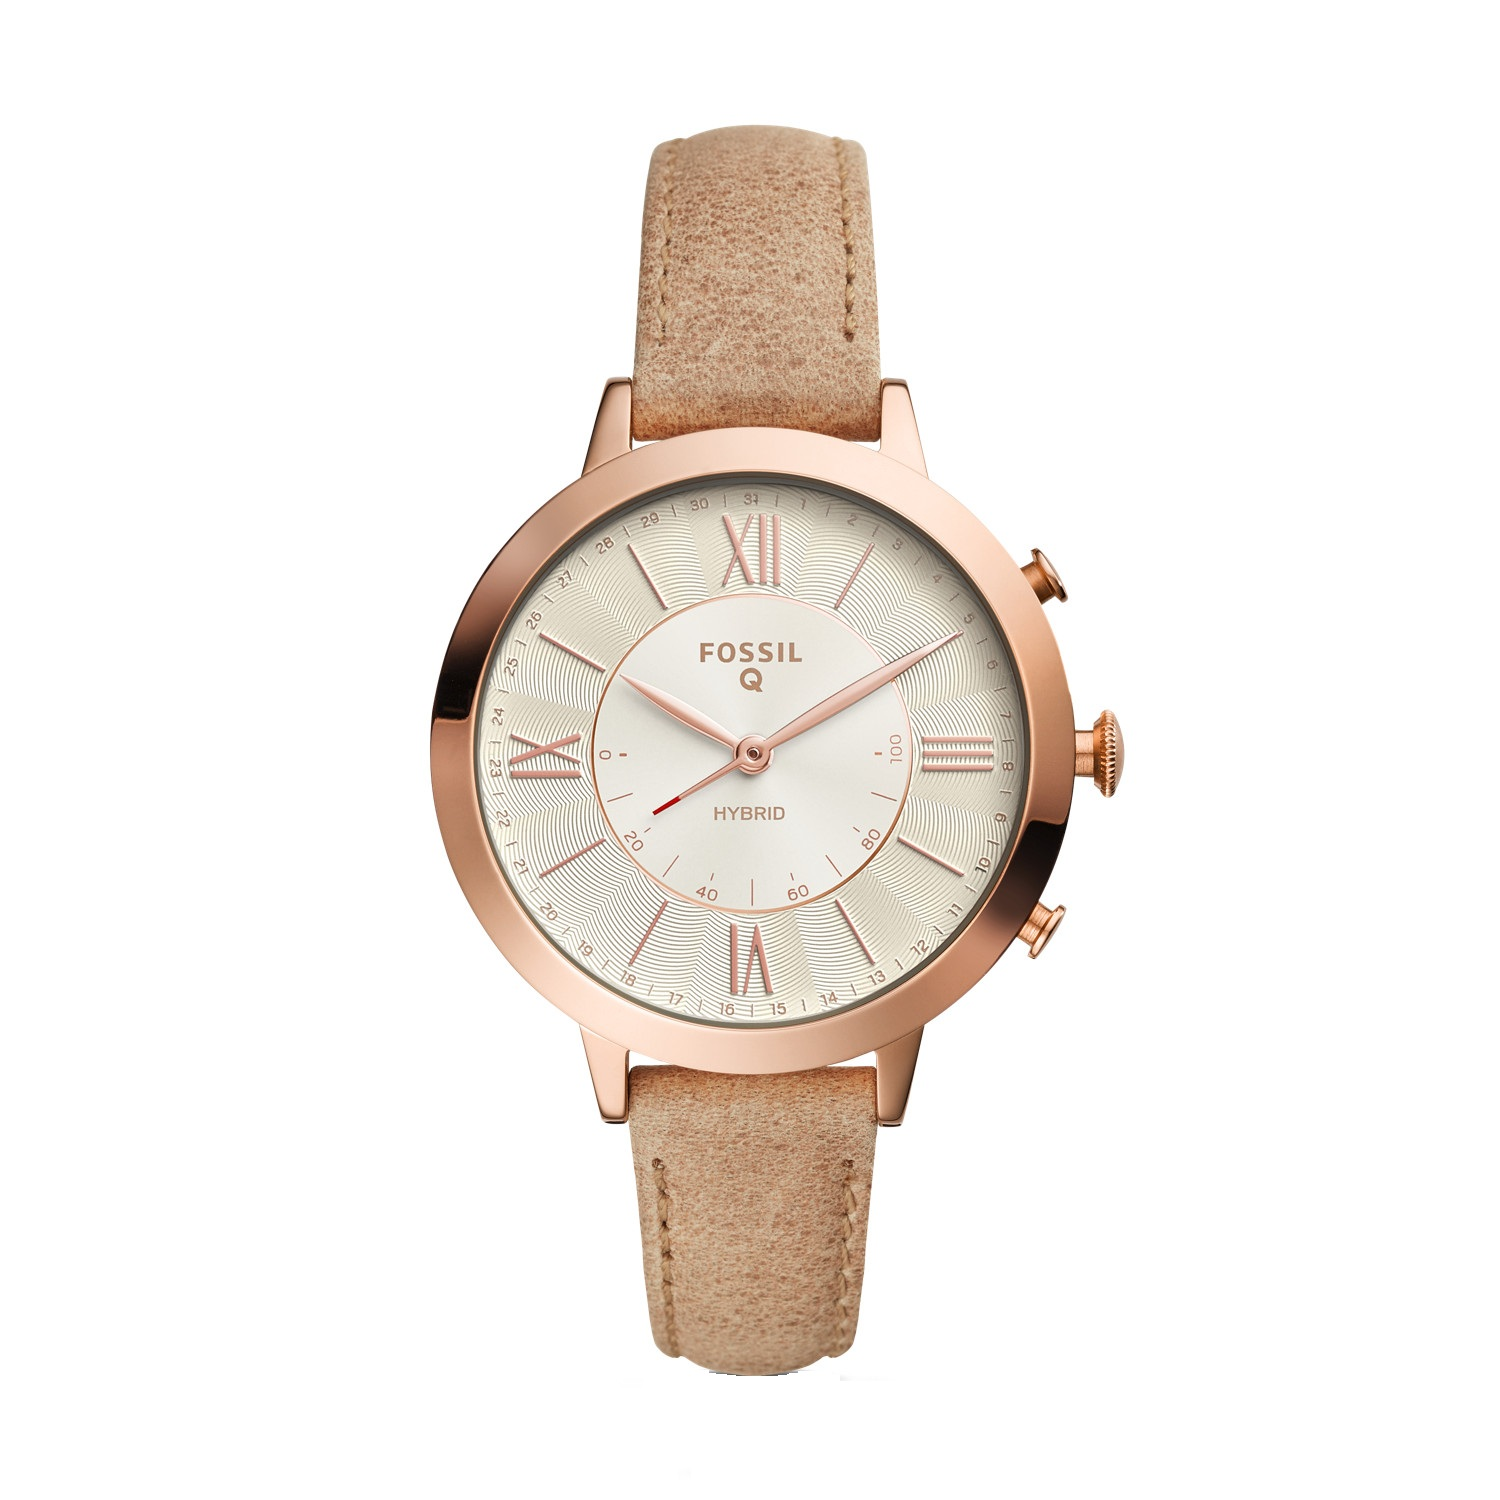 Fossil Q Jacqueline Smart Watch